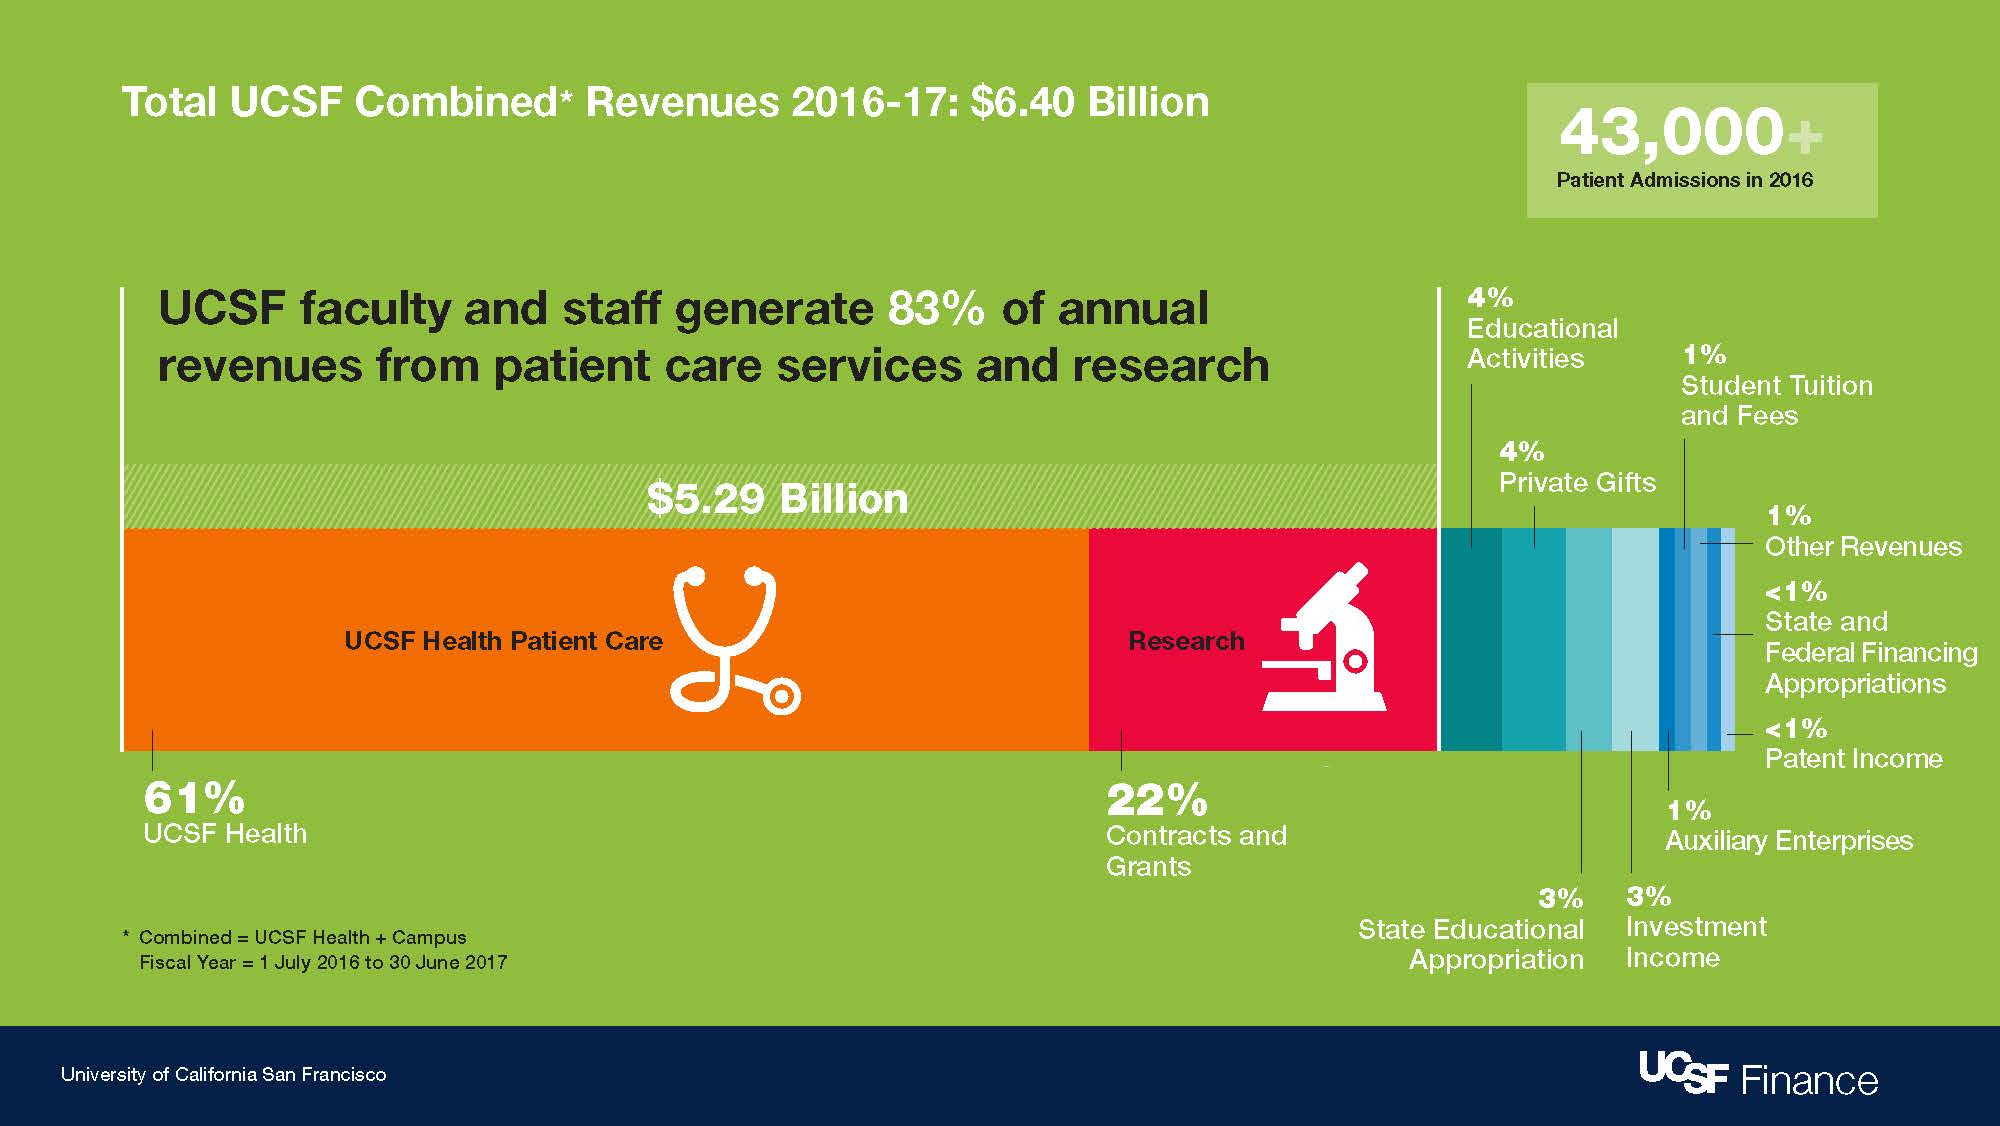 UCSF's 2016-17 combined revenues between the campus and Health totaled $6.4 billion.